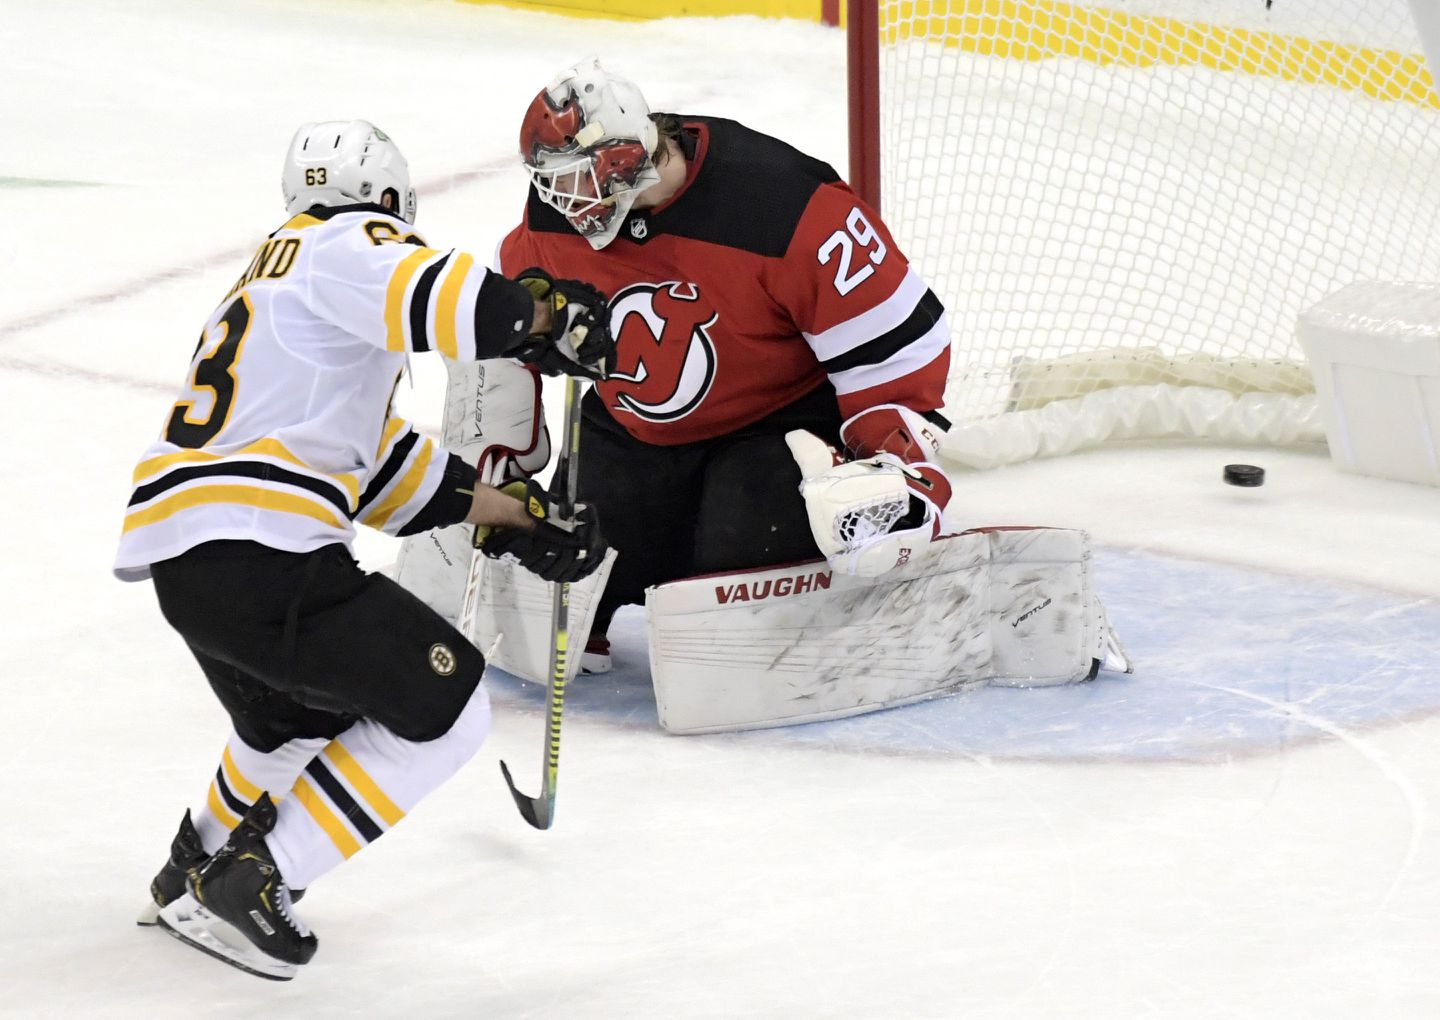 Among the many changes for the Bruins: Against Devils, they win a shootout  to open the season - The Boston Globe